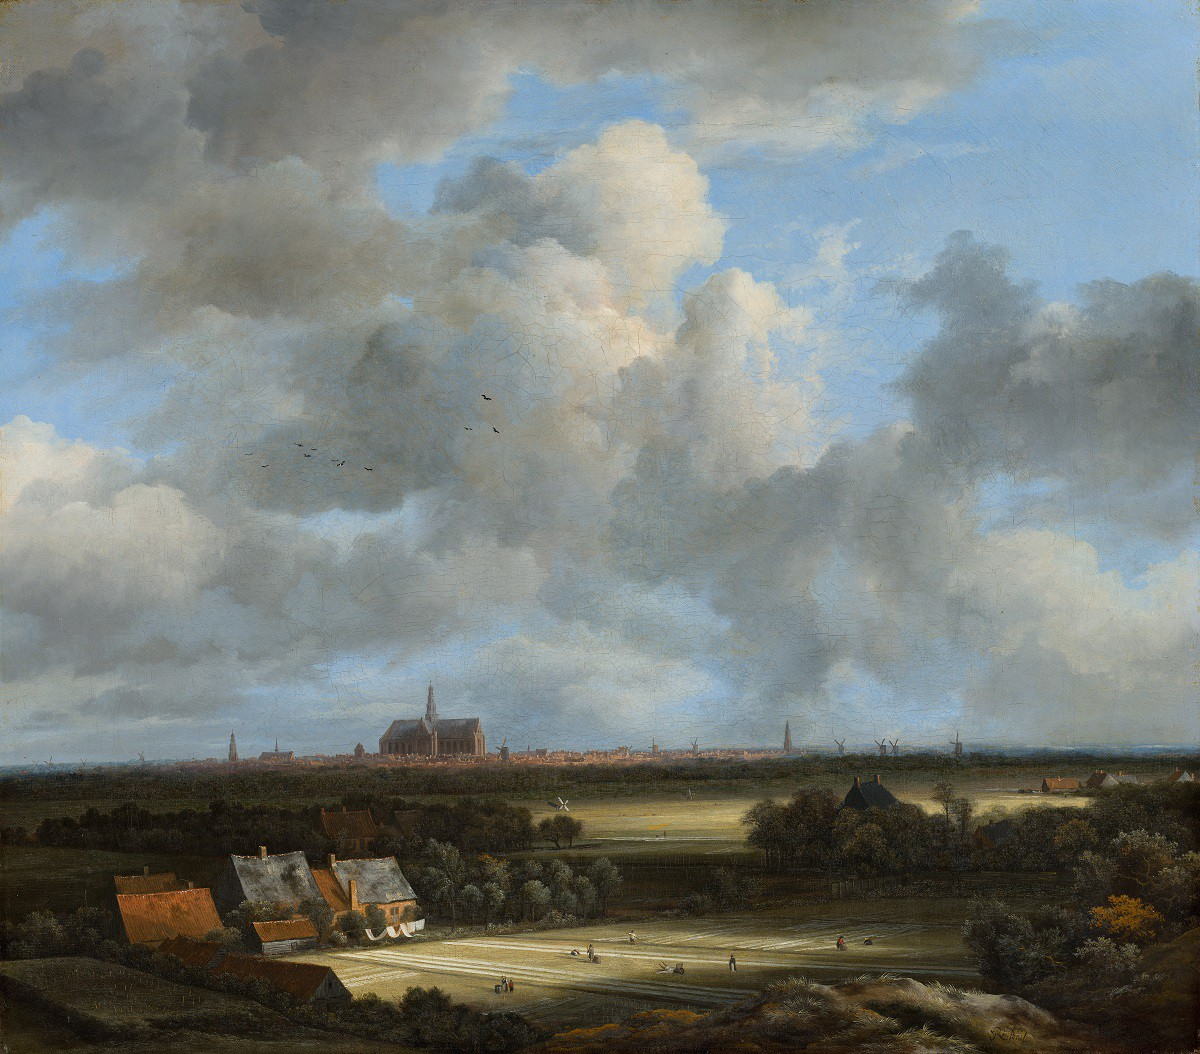 Painting of Dutch landscape with a church and cloudy sky